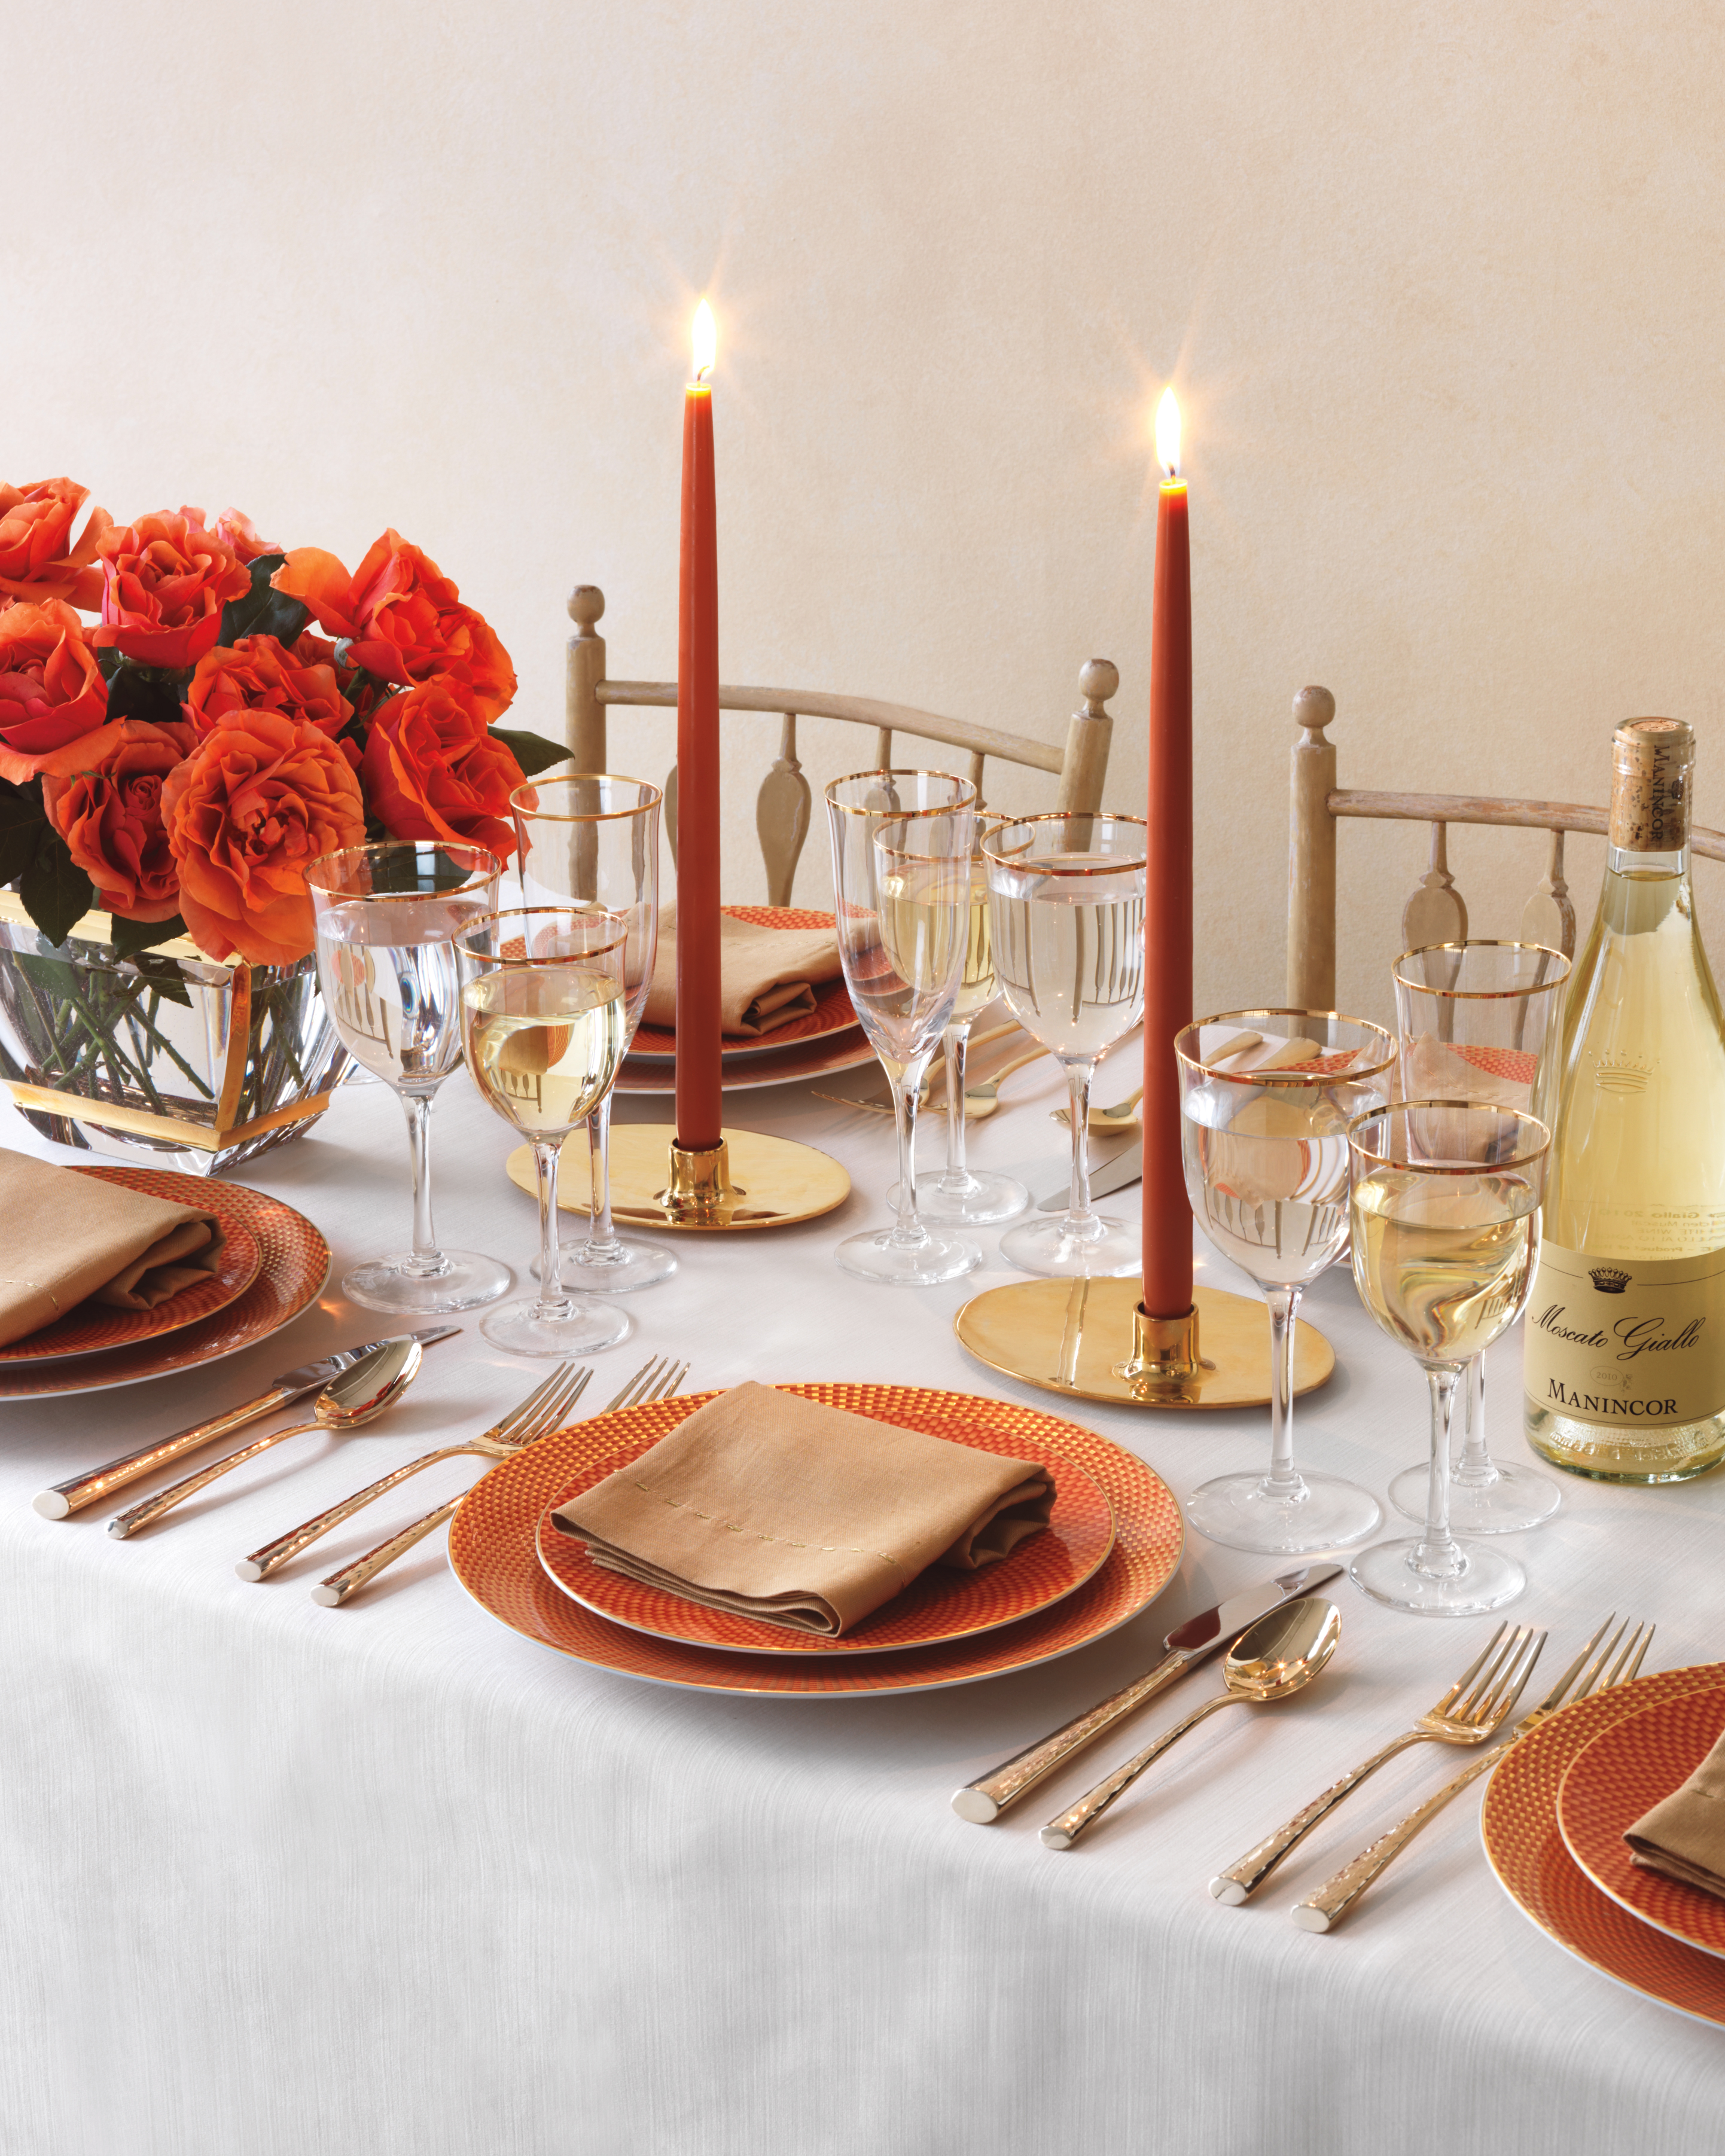 Warm and Cozy Table Settings